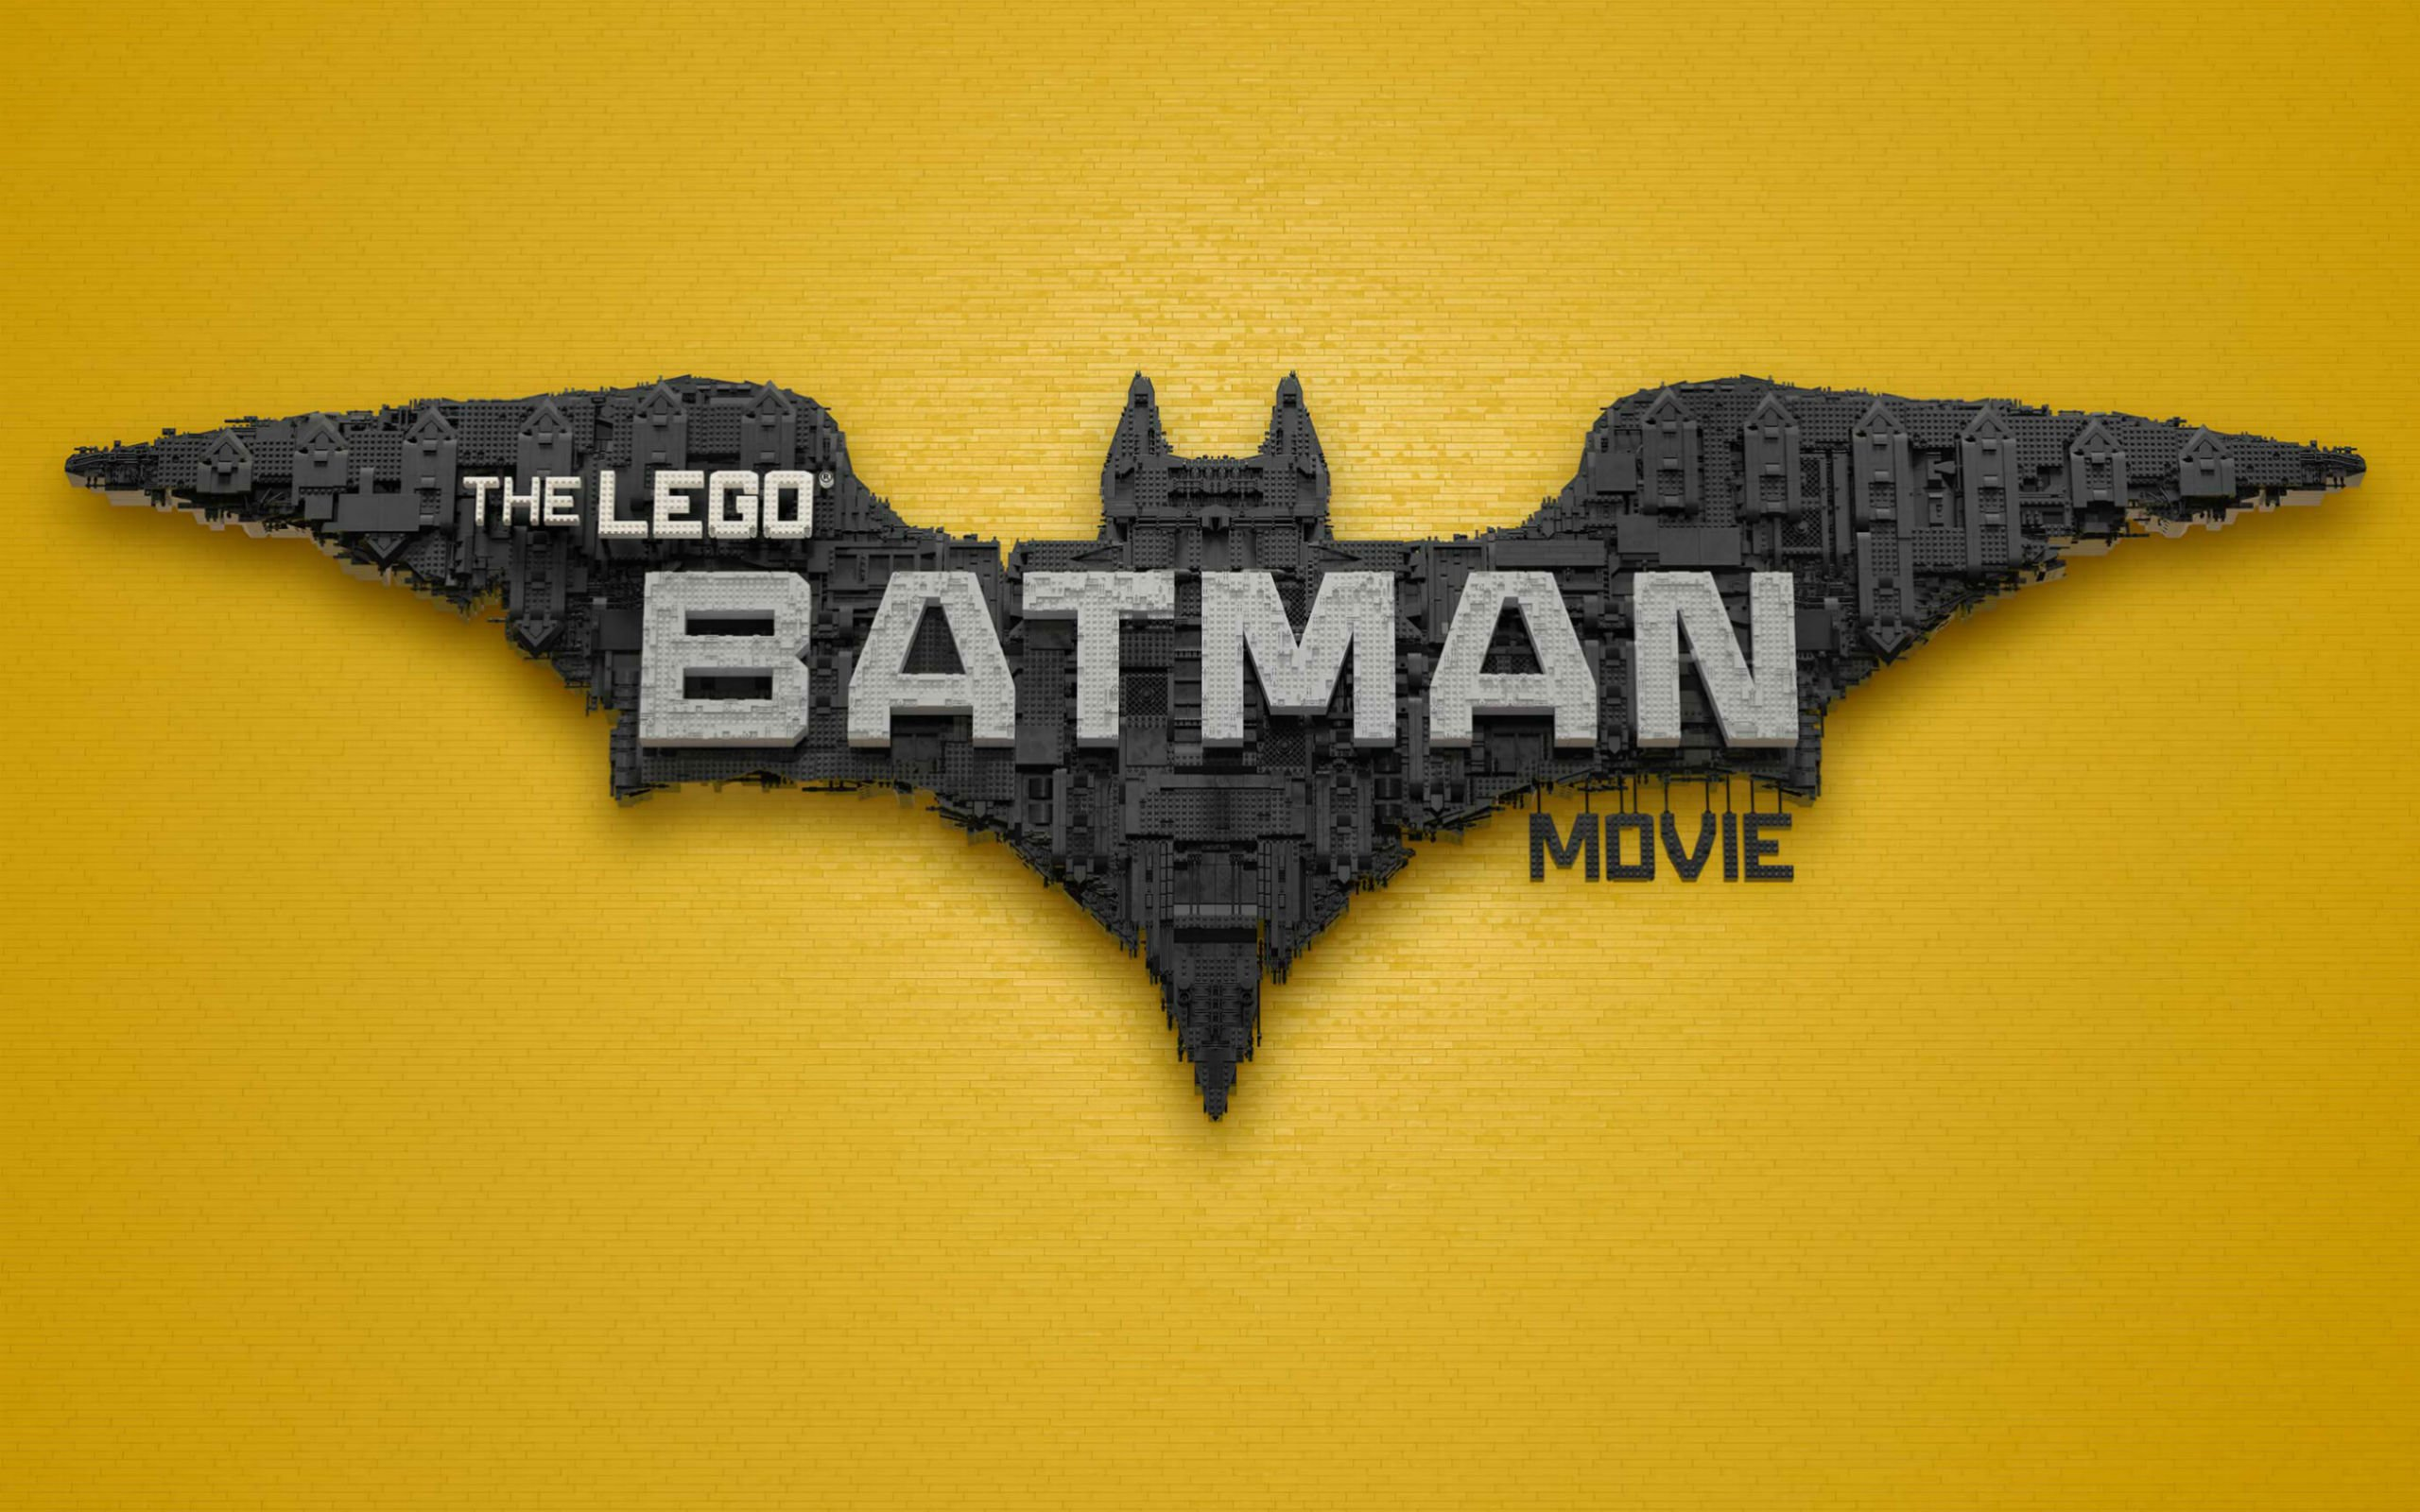 The Lego Batman Movie wallpaper 1